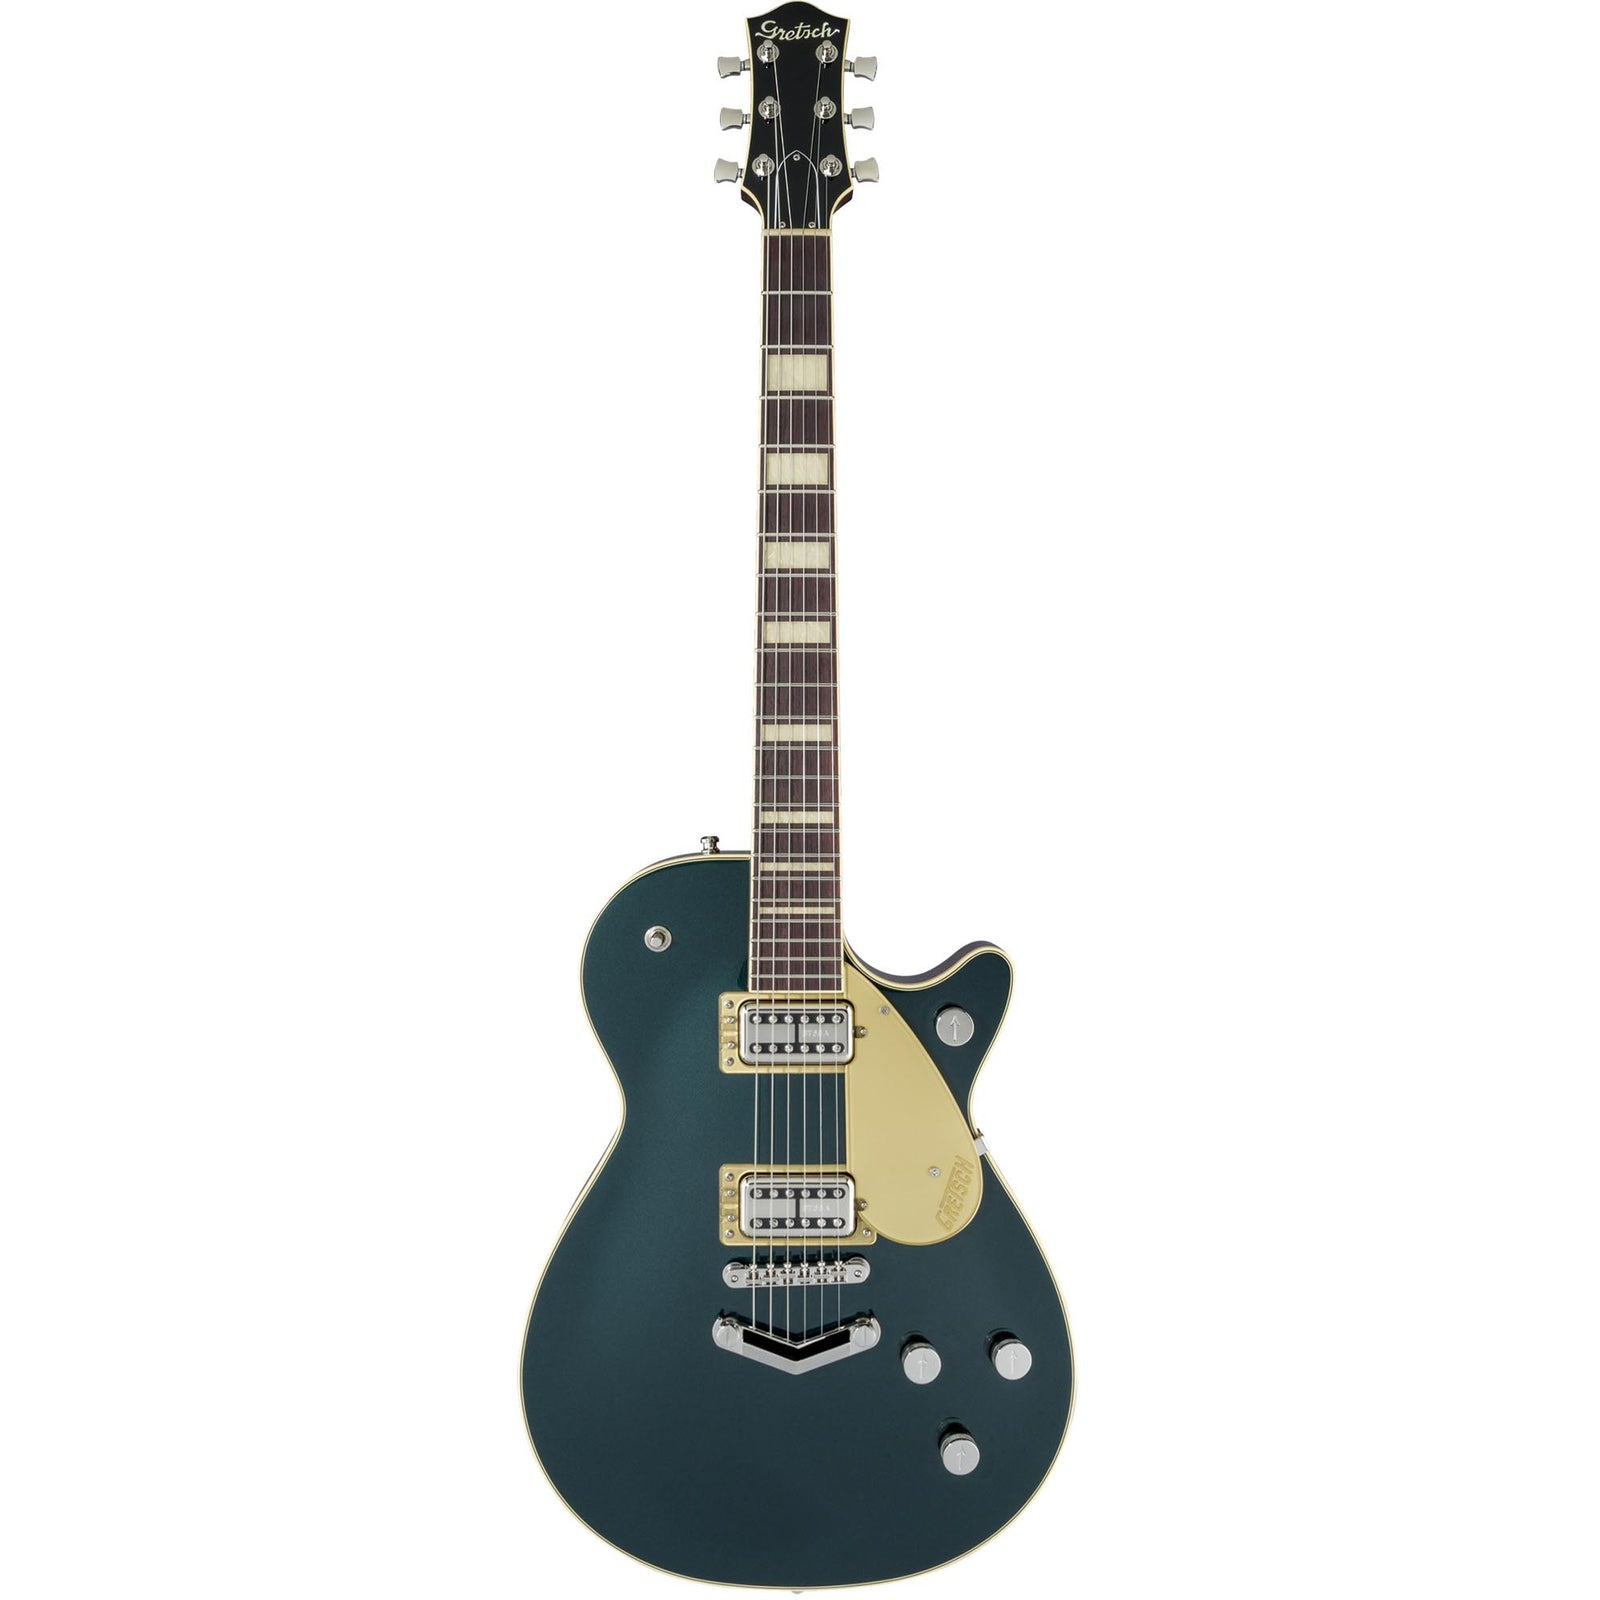 Gretsch G6228 Players Edition Jet BT With V-Stoptail - Cadillac Green